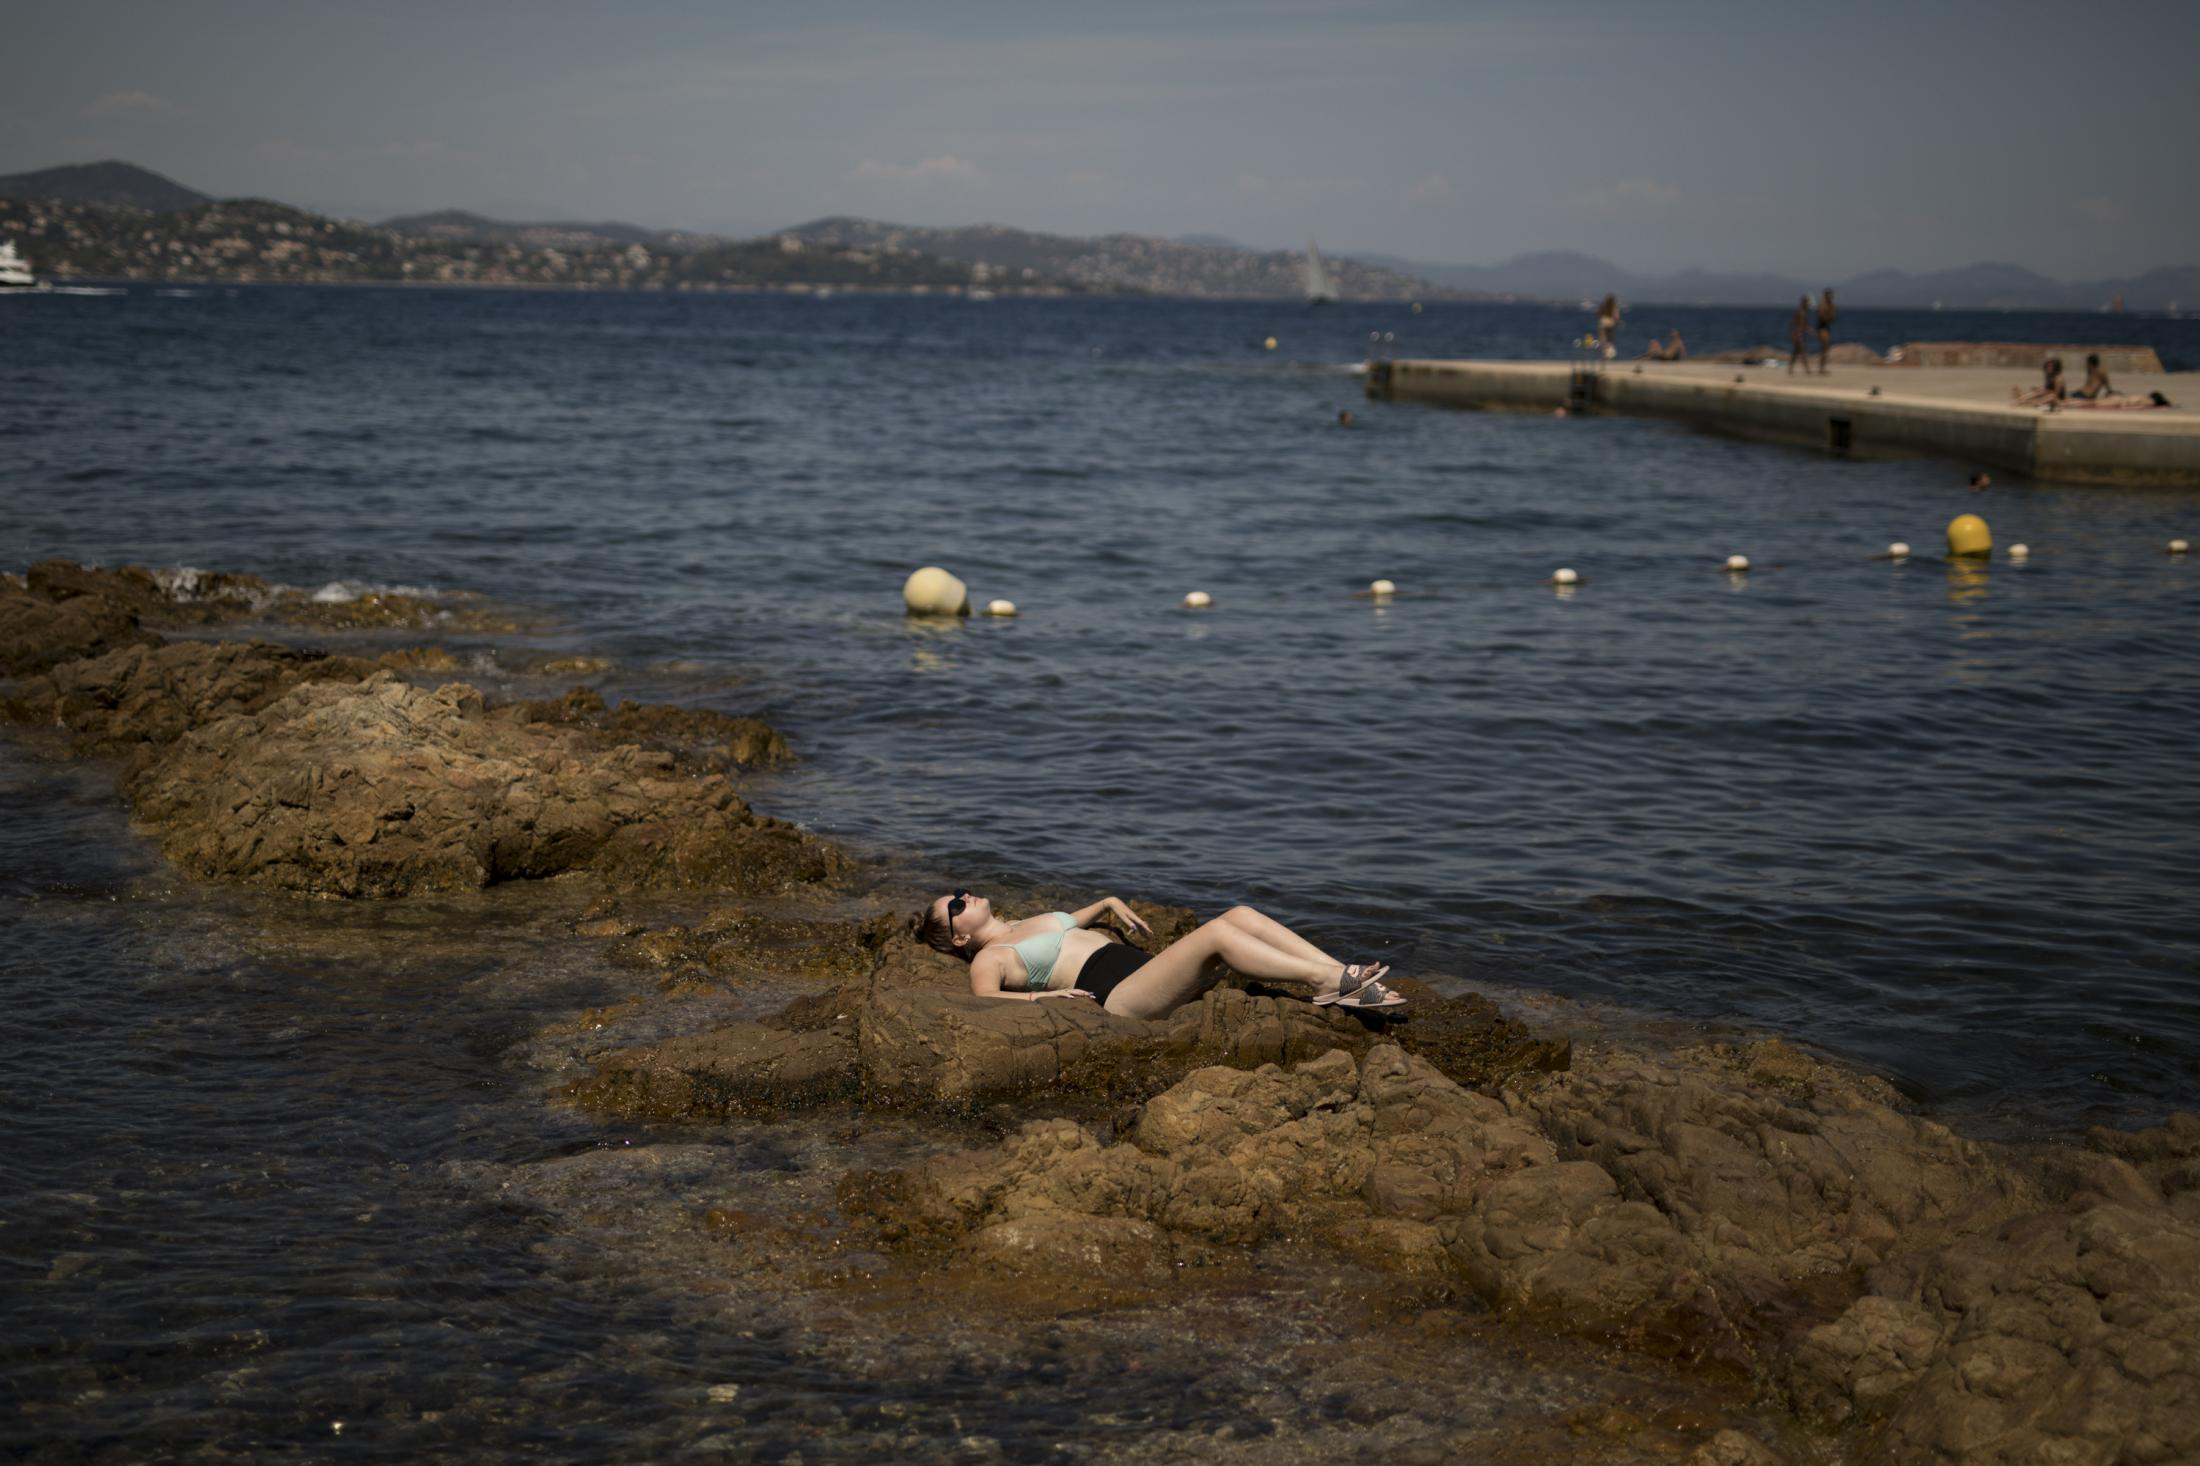 A woman sunbathes on the rocks in Saint-Tropez, southern France, Saturday Aug 8, 2020. The glamorous French Riviera resort of Saint-Tropez is requiring face masks outdoors starting Saturday, threatening to sober the mood in a place renowned for high-end, free-wheeling summer beach parties. (AP Photo/Daniel Cole)